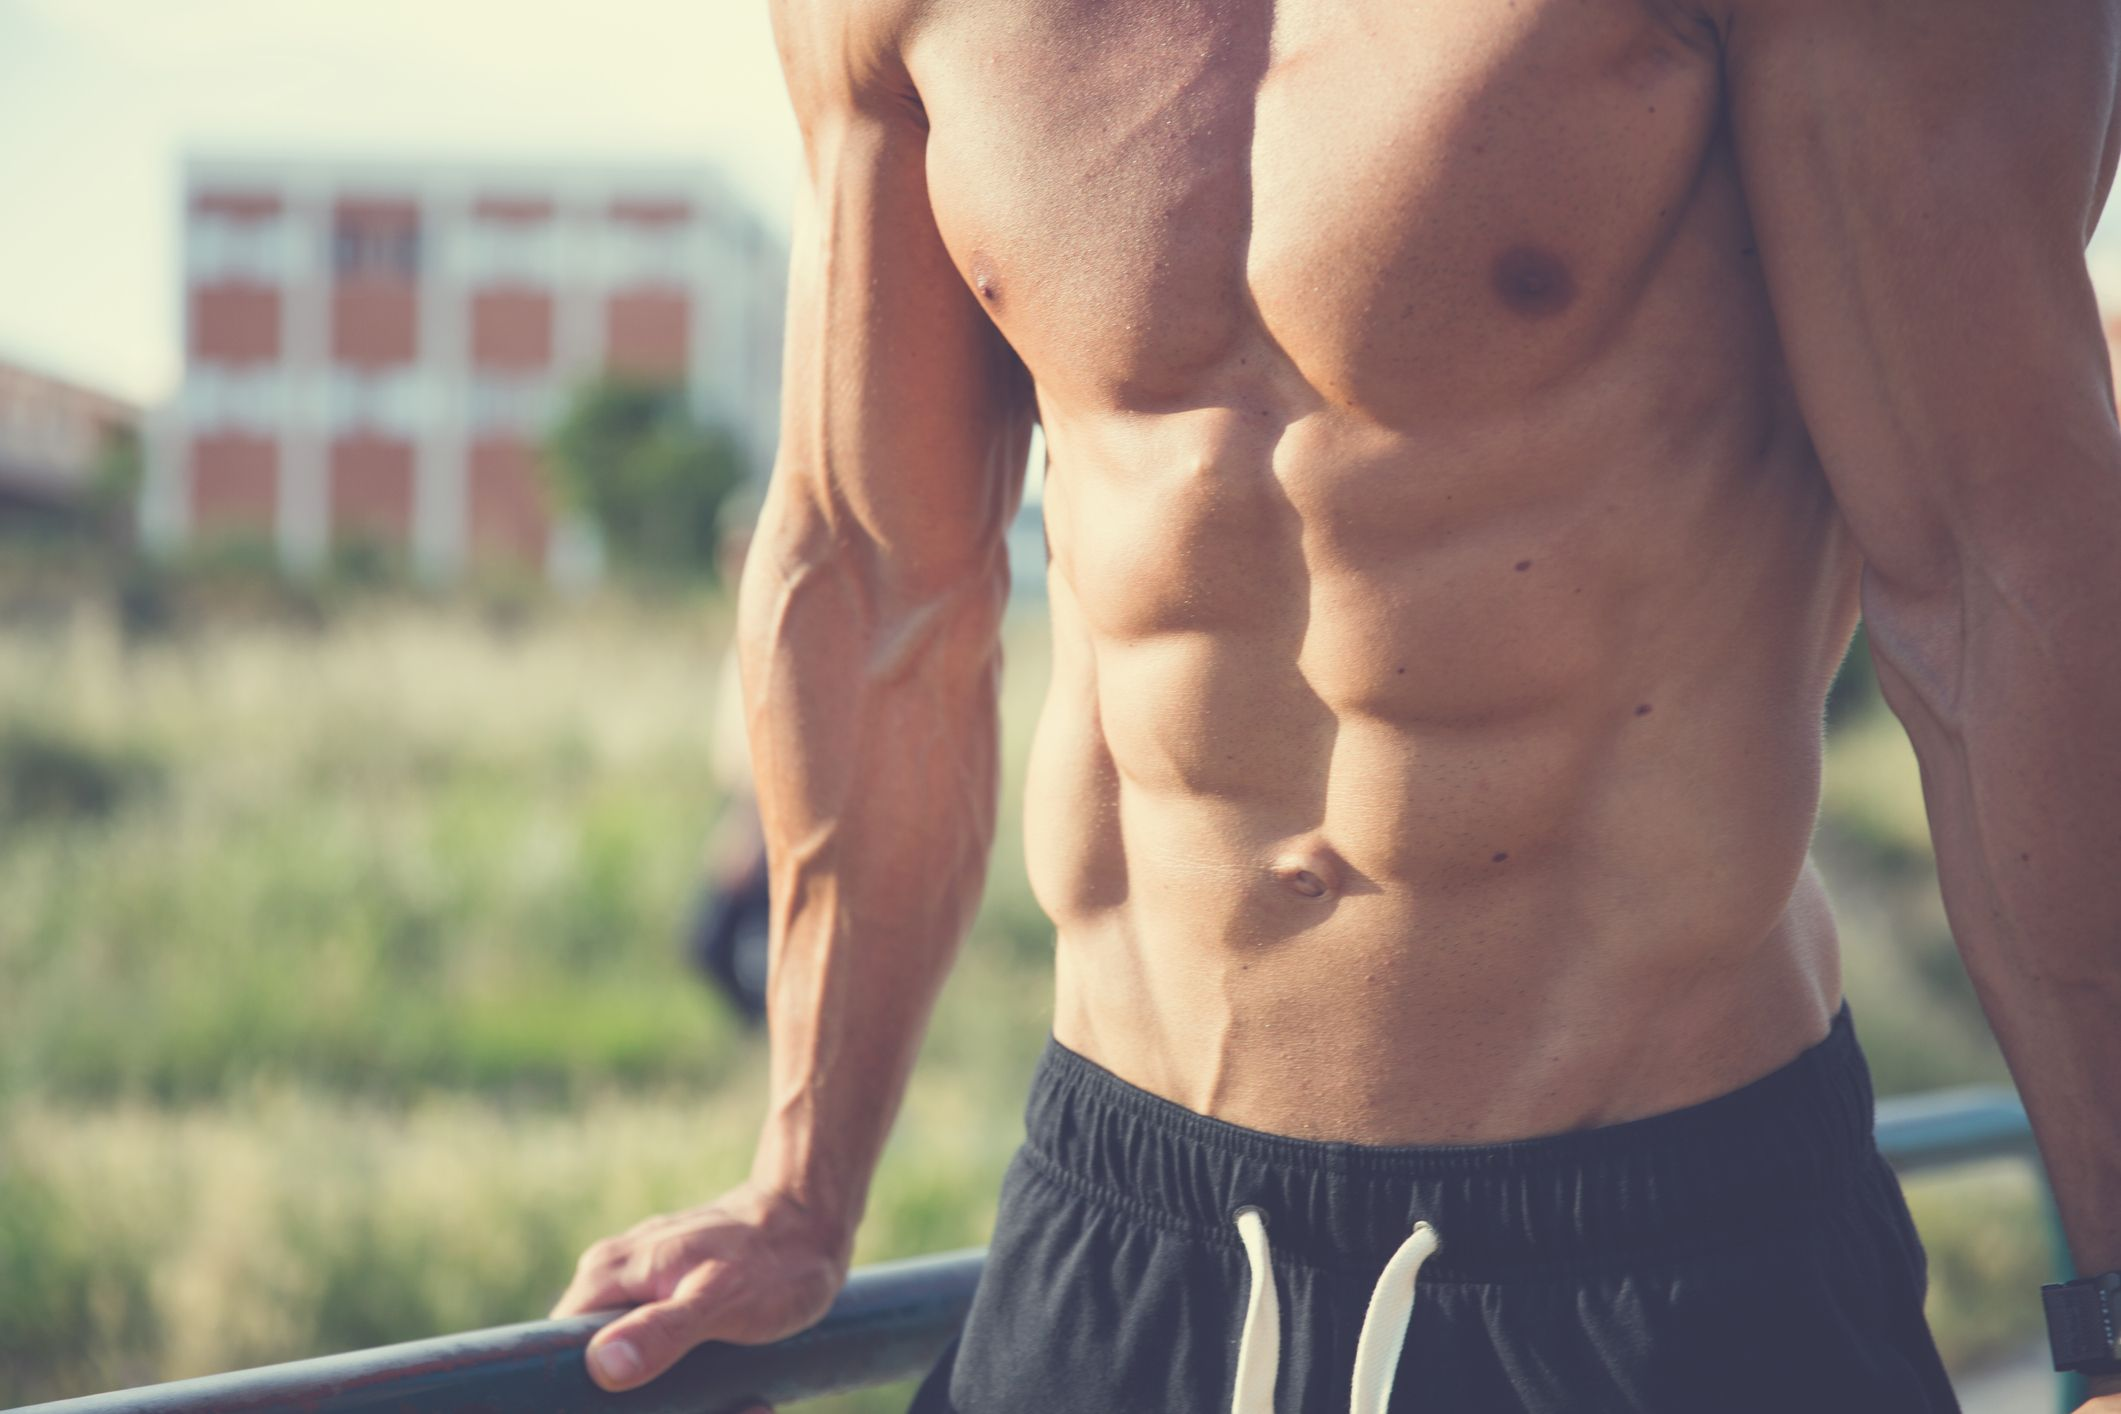 Men With Six-Pack Abs Are Revealing What it Took to Get So Fit